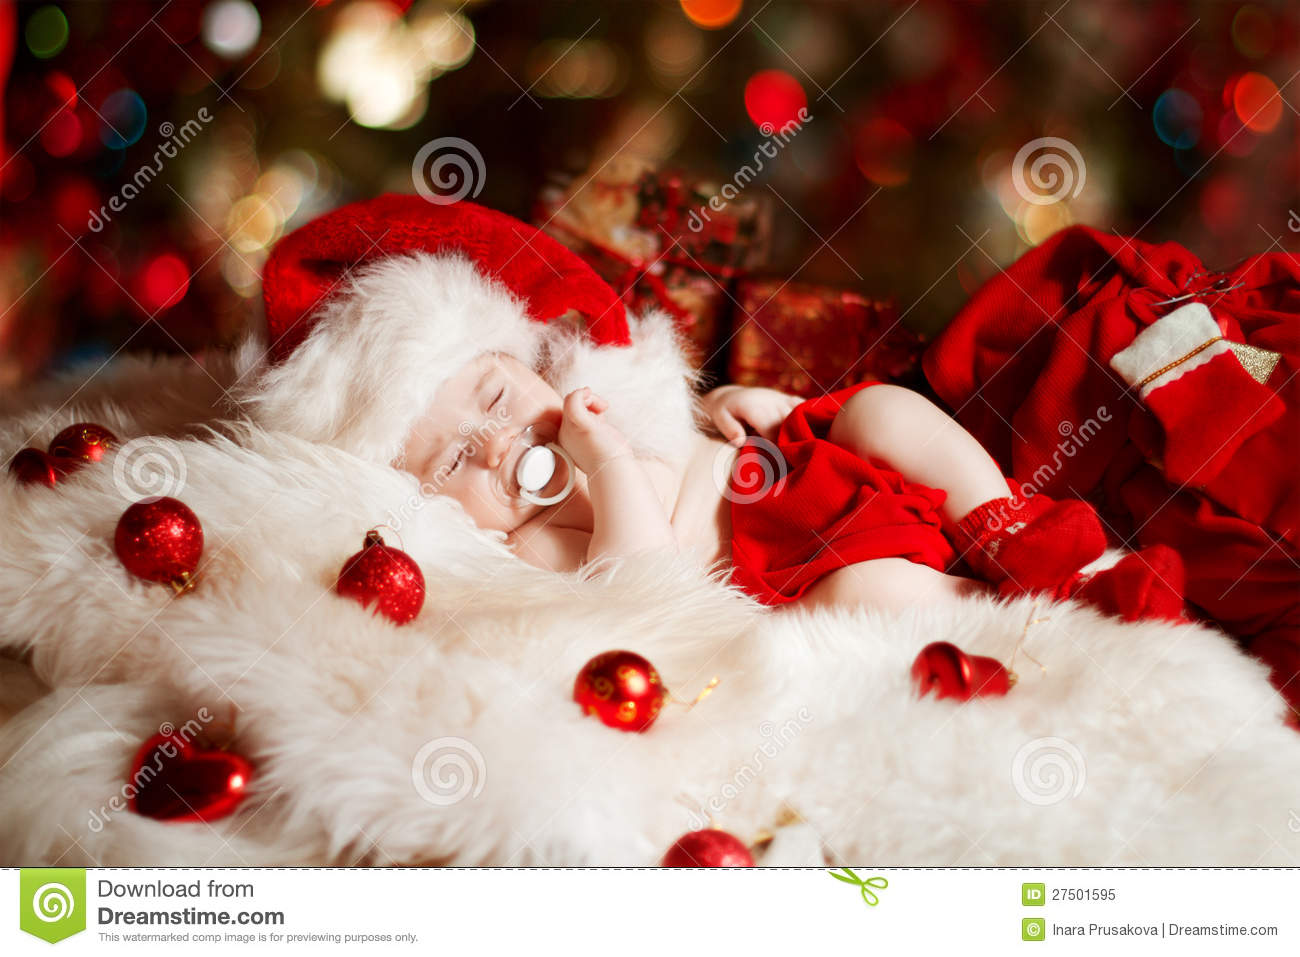 Christmas Newborn Baby Sleeping In Santa Hat Royalty Free Stock ...